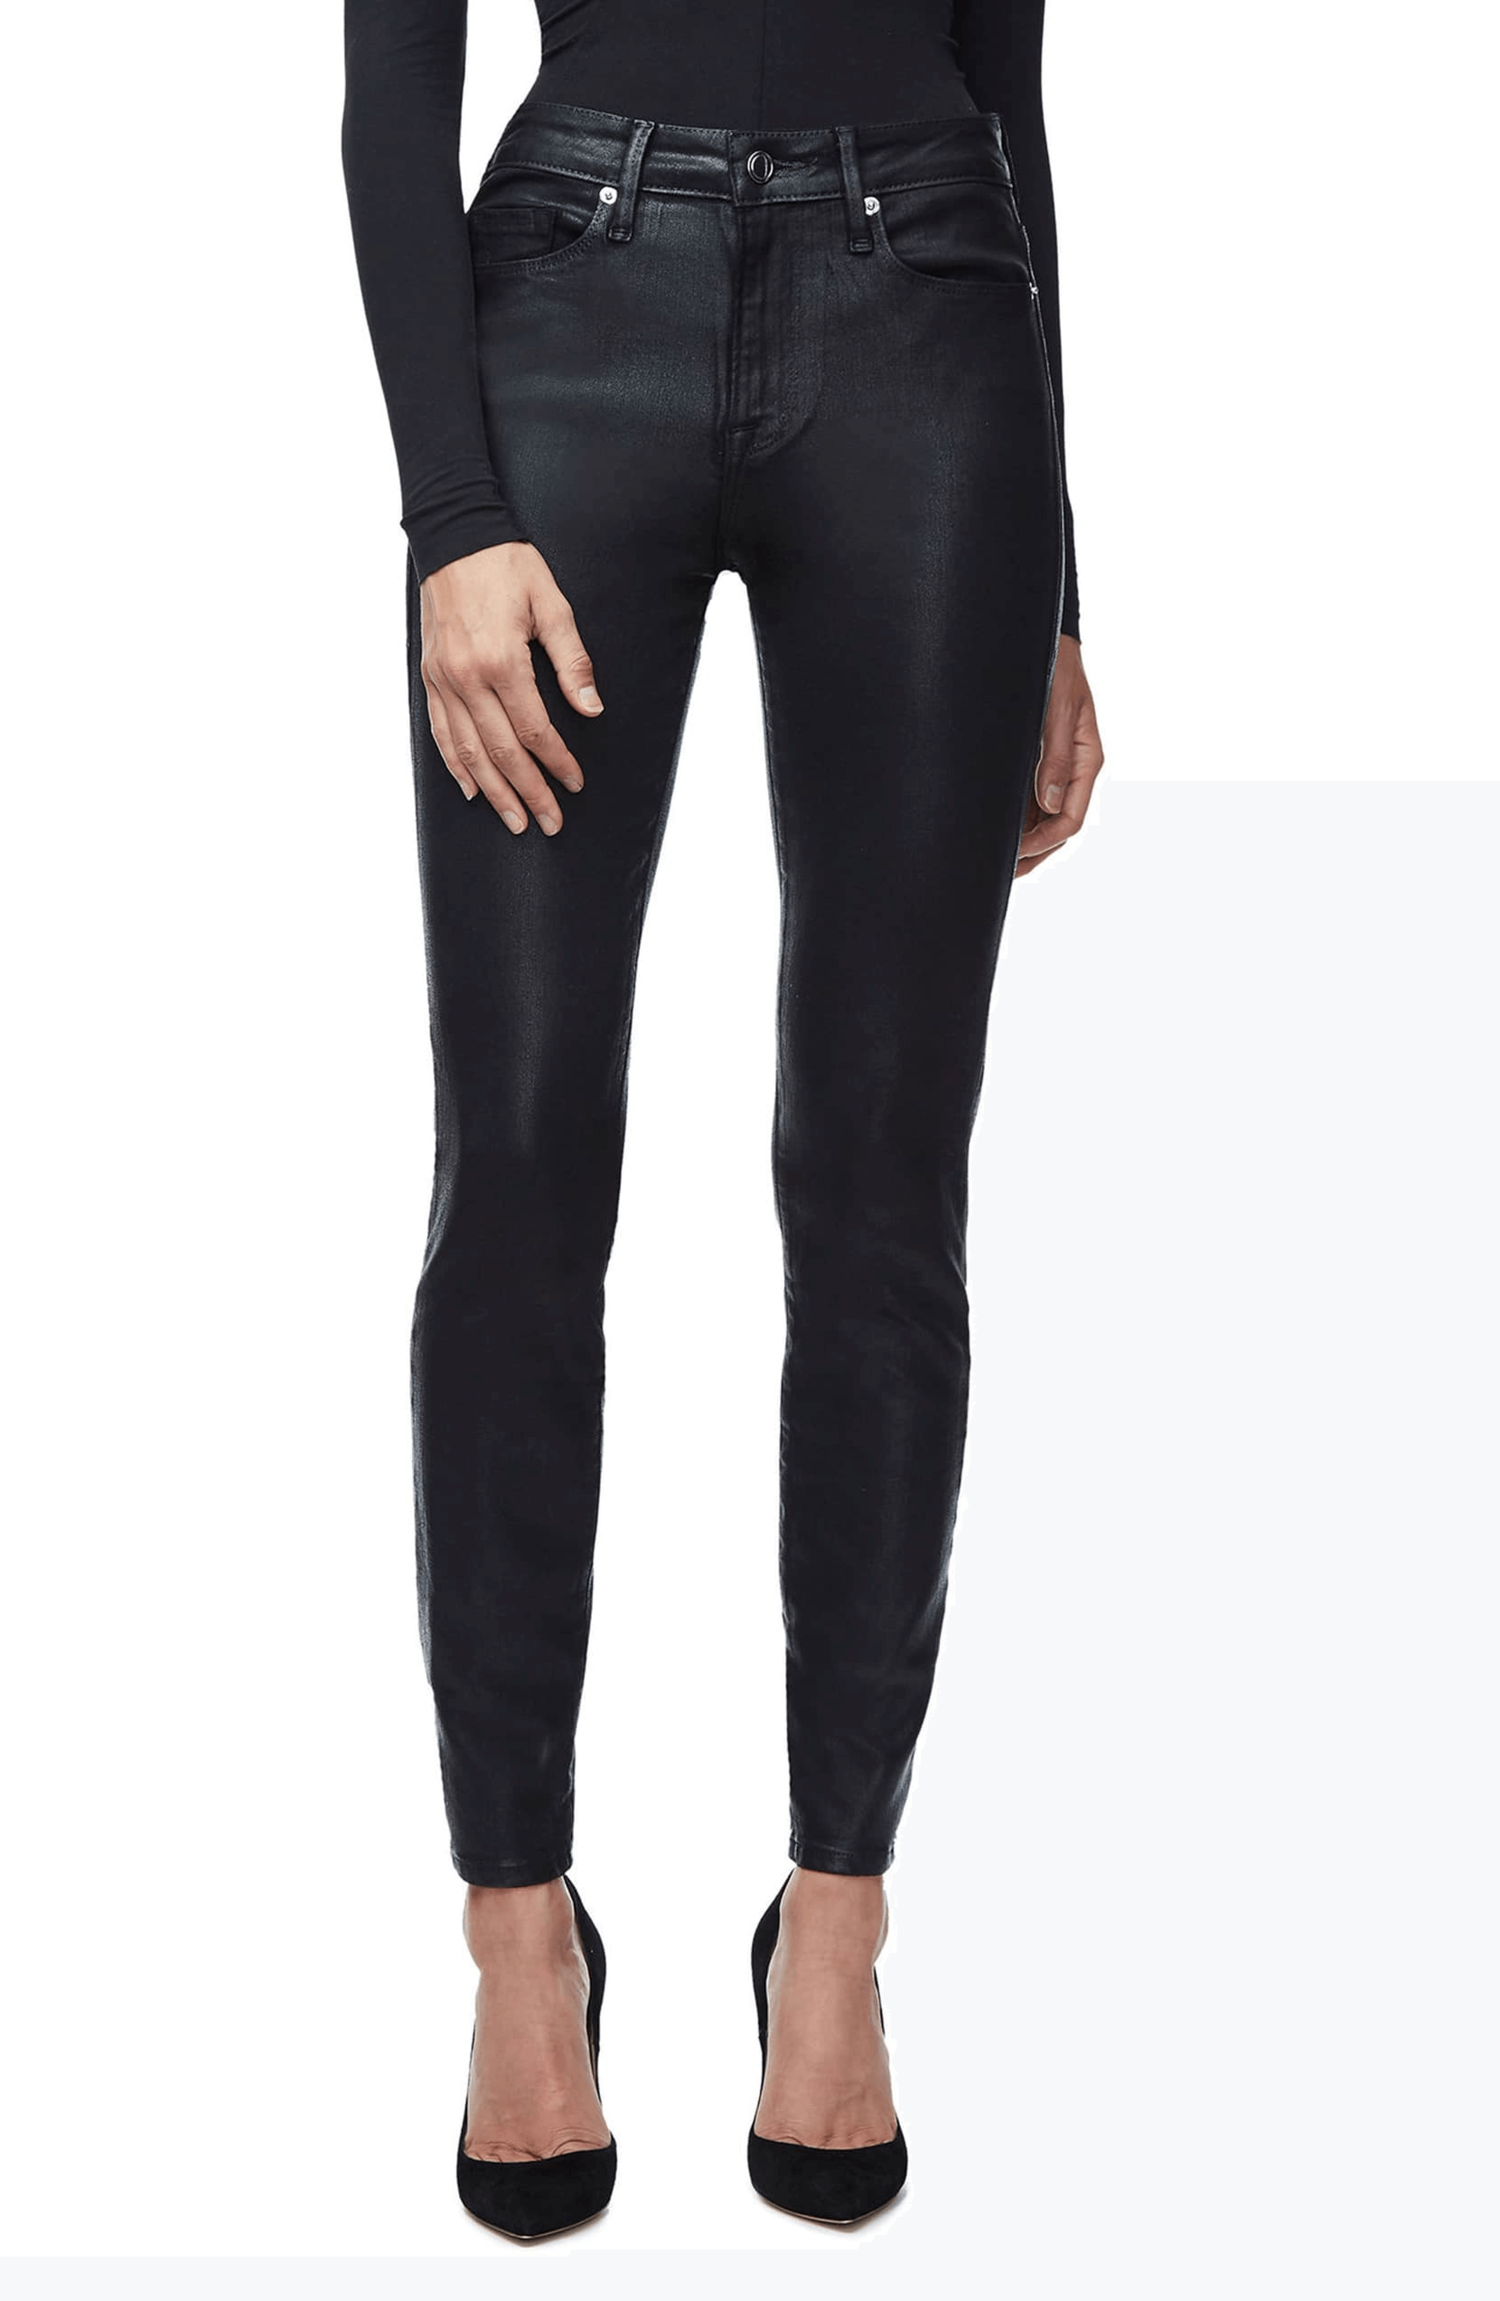 Good Legs High Waist Skinny Jeans, $179, Nordstrom